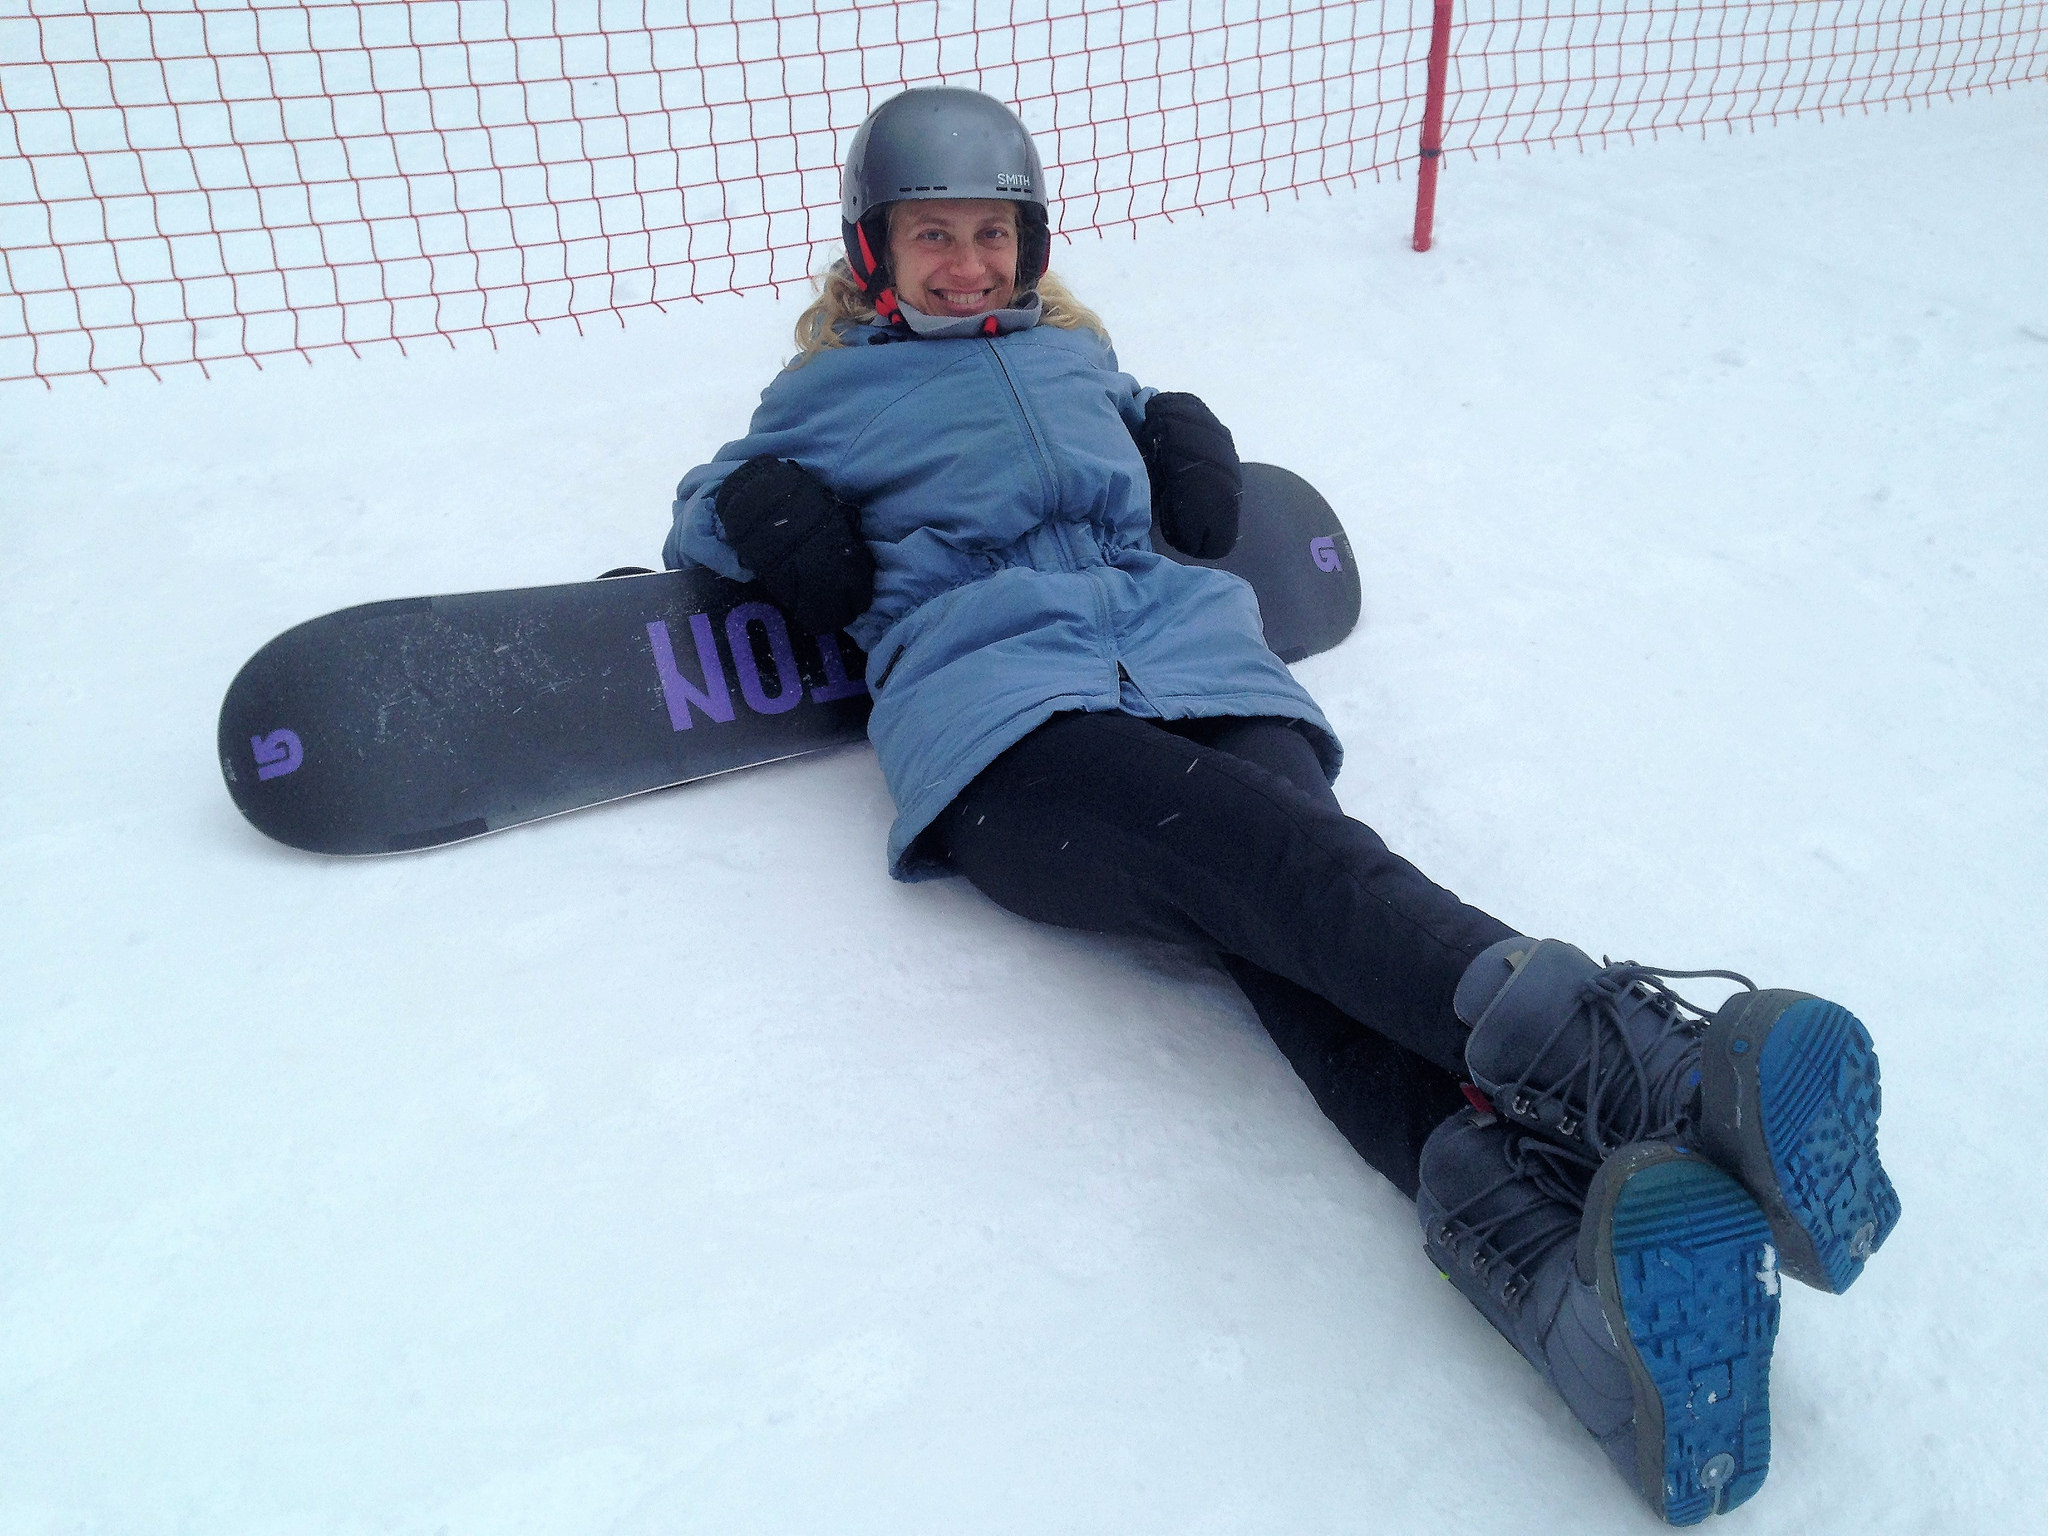 snowboarding for women - stowe vermont